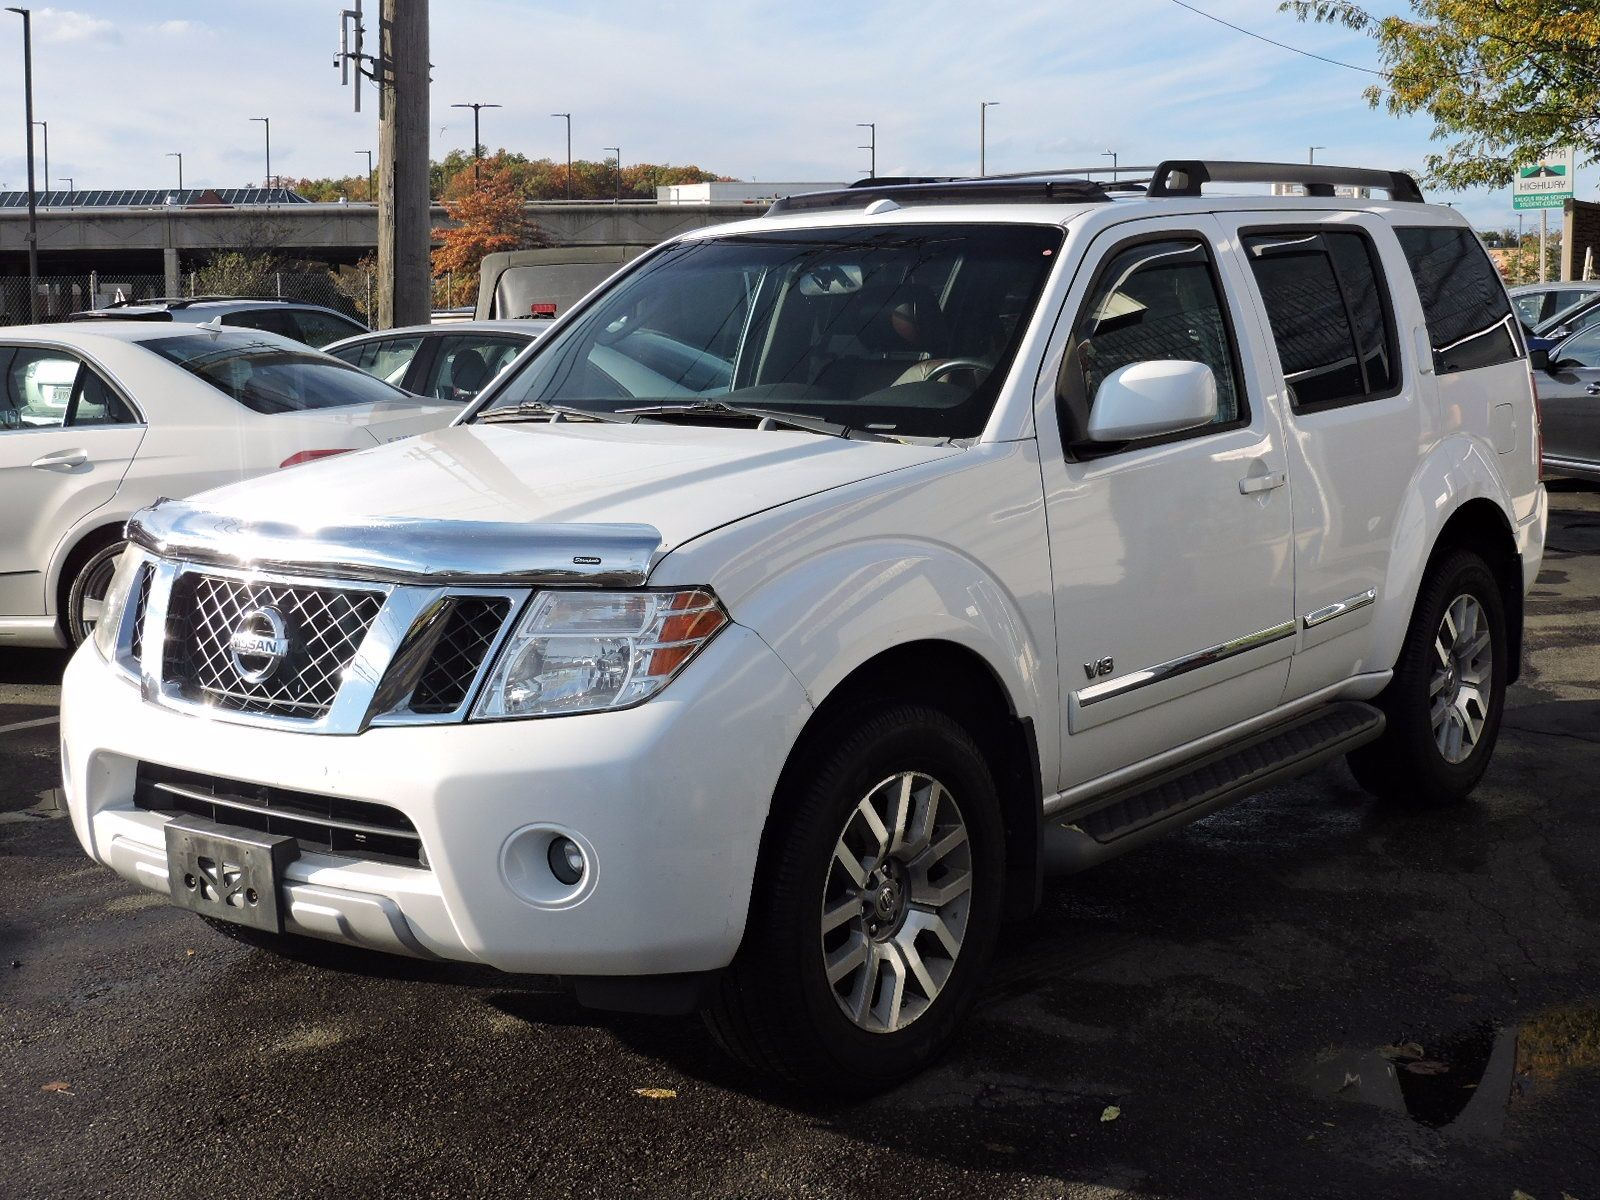 2008 Nissan Pathfinder - All Wheel Drive - DVD Entertainment System